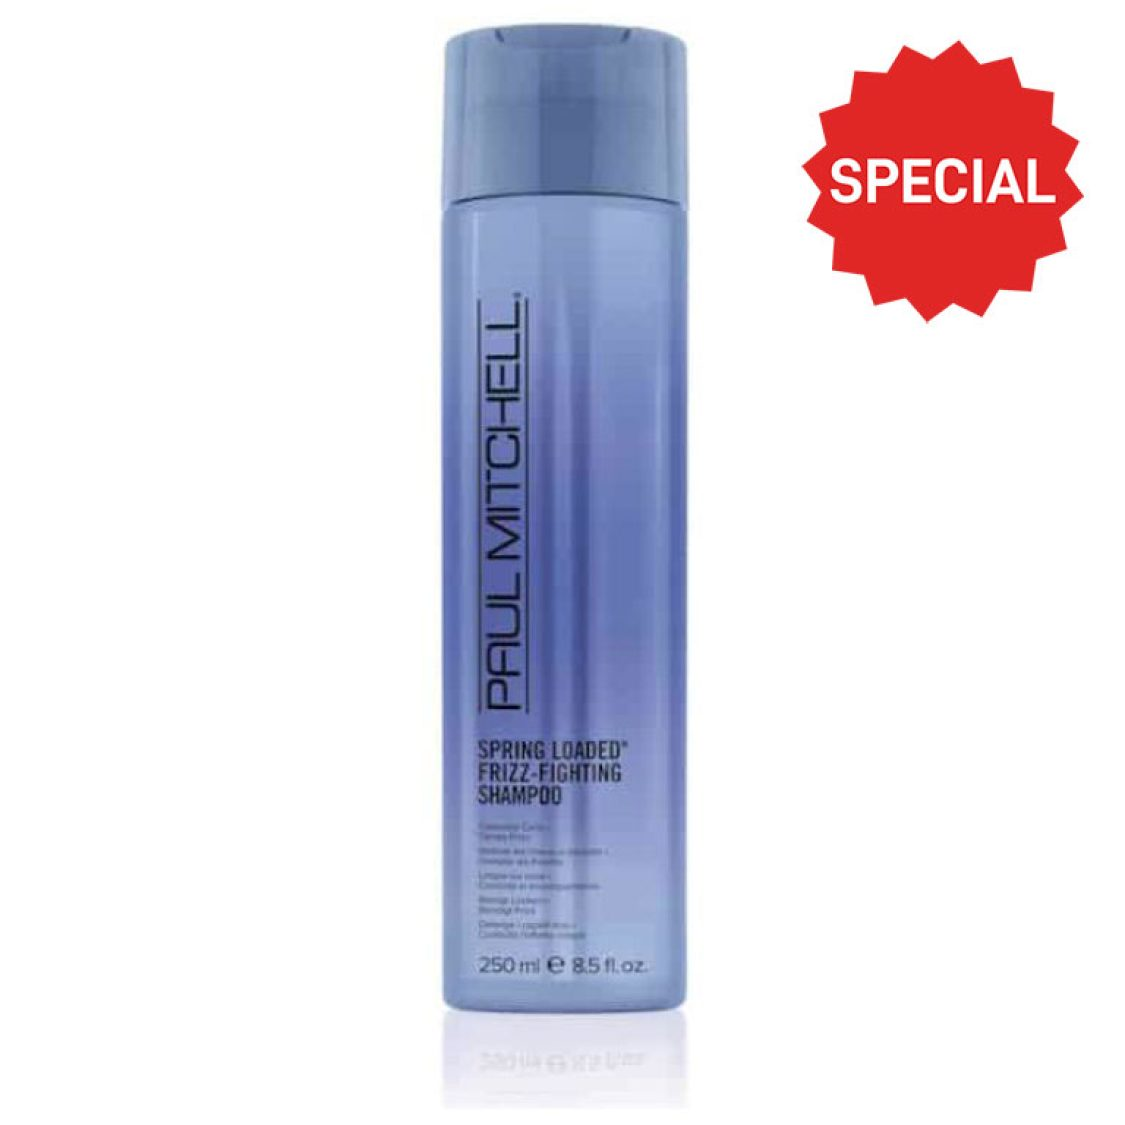 Paul Mitchell - Moisture - Spring Loaded Detangling Shampoo 250ml